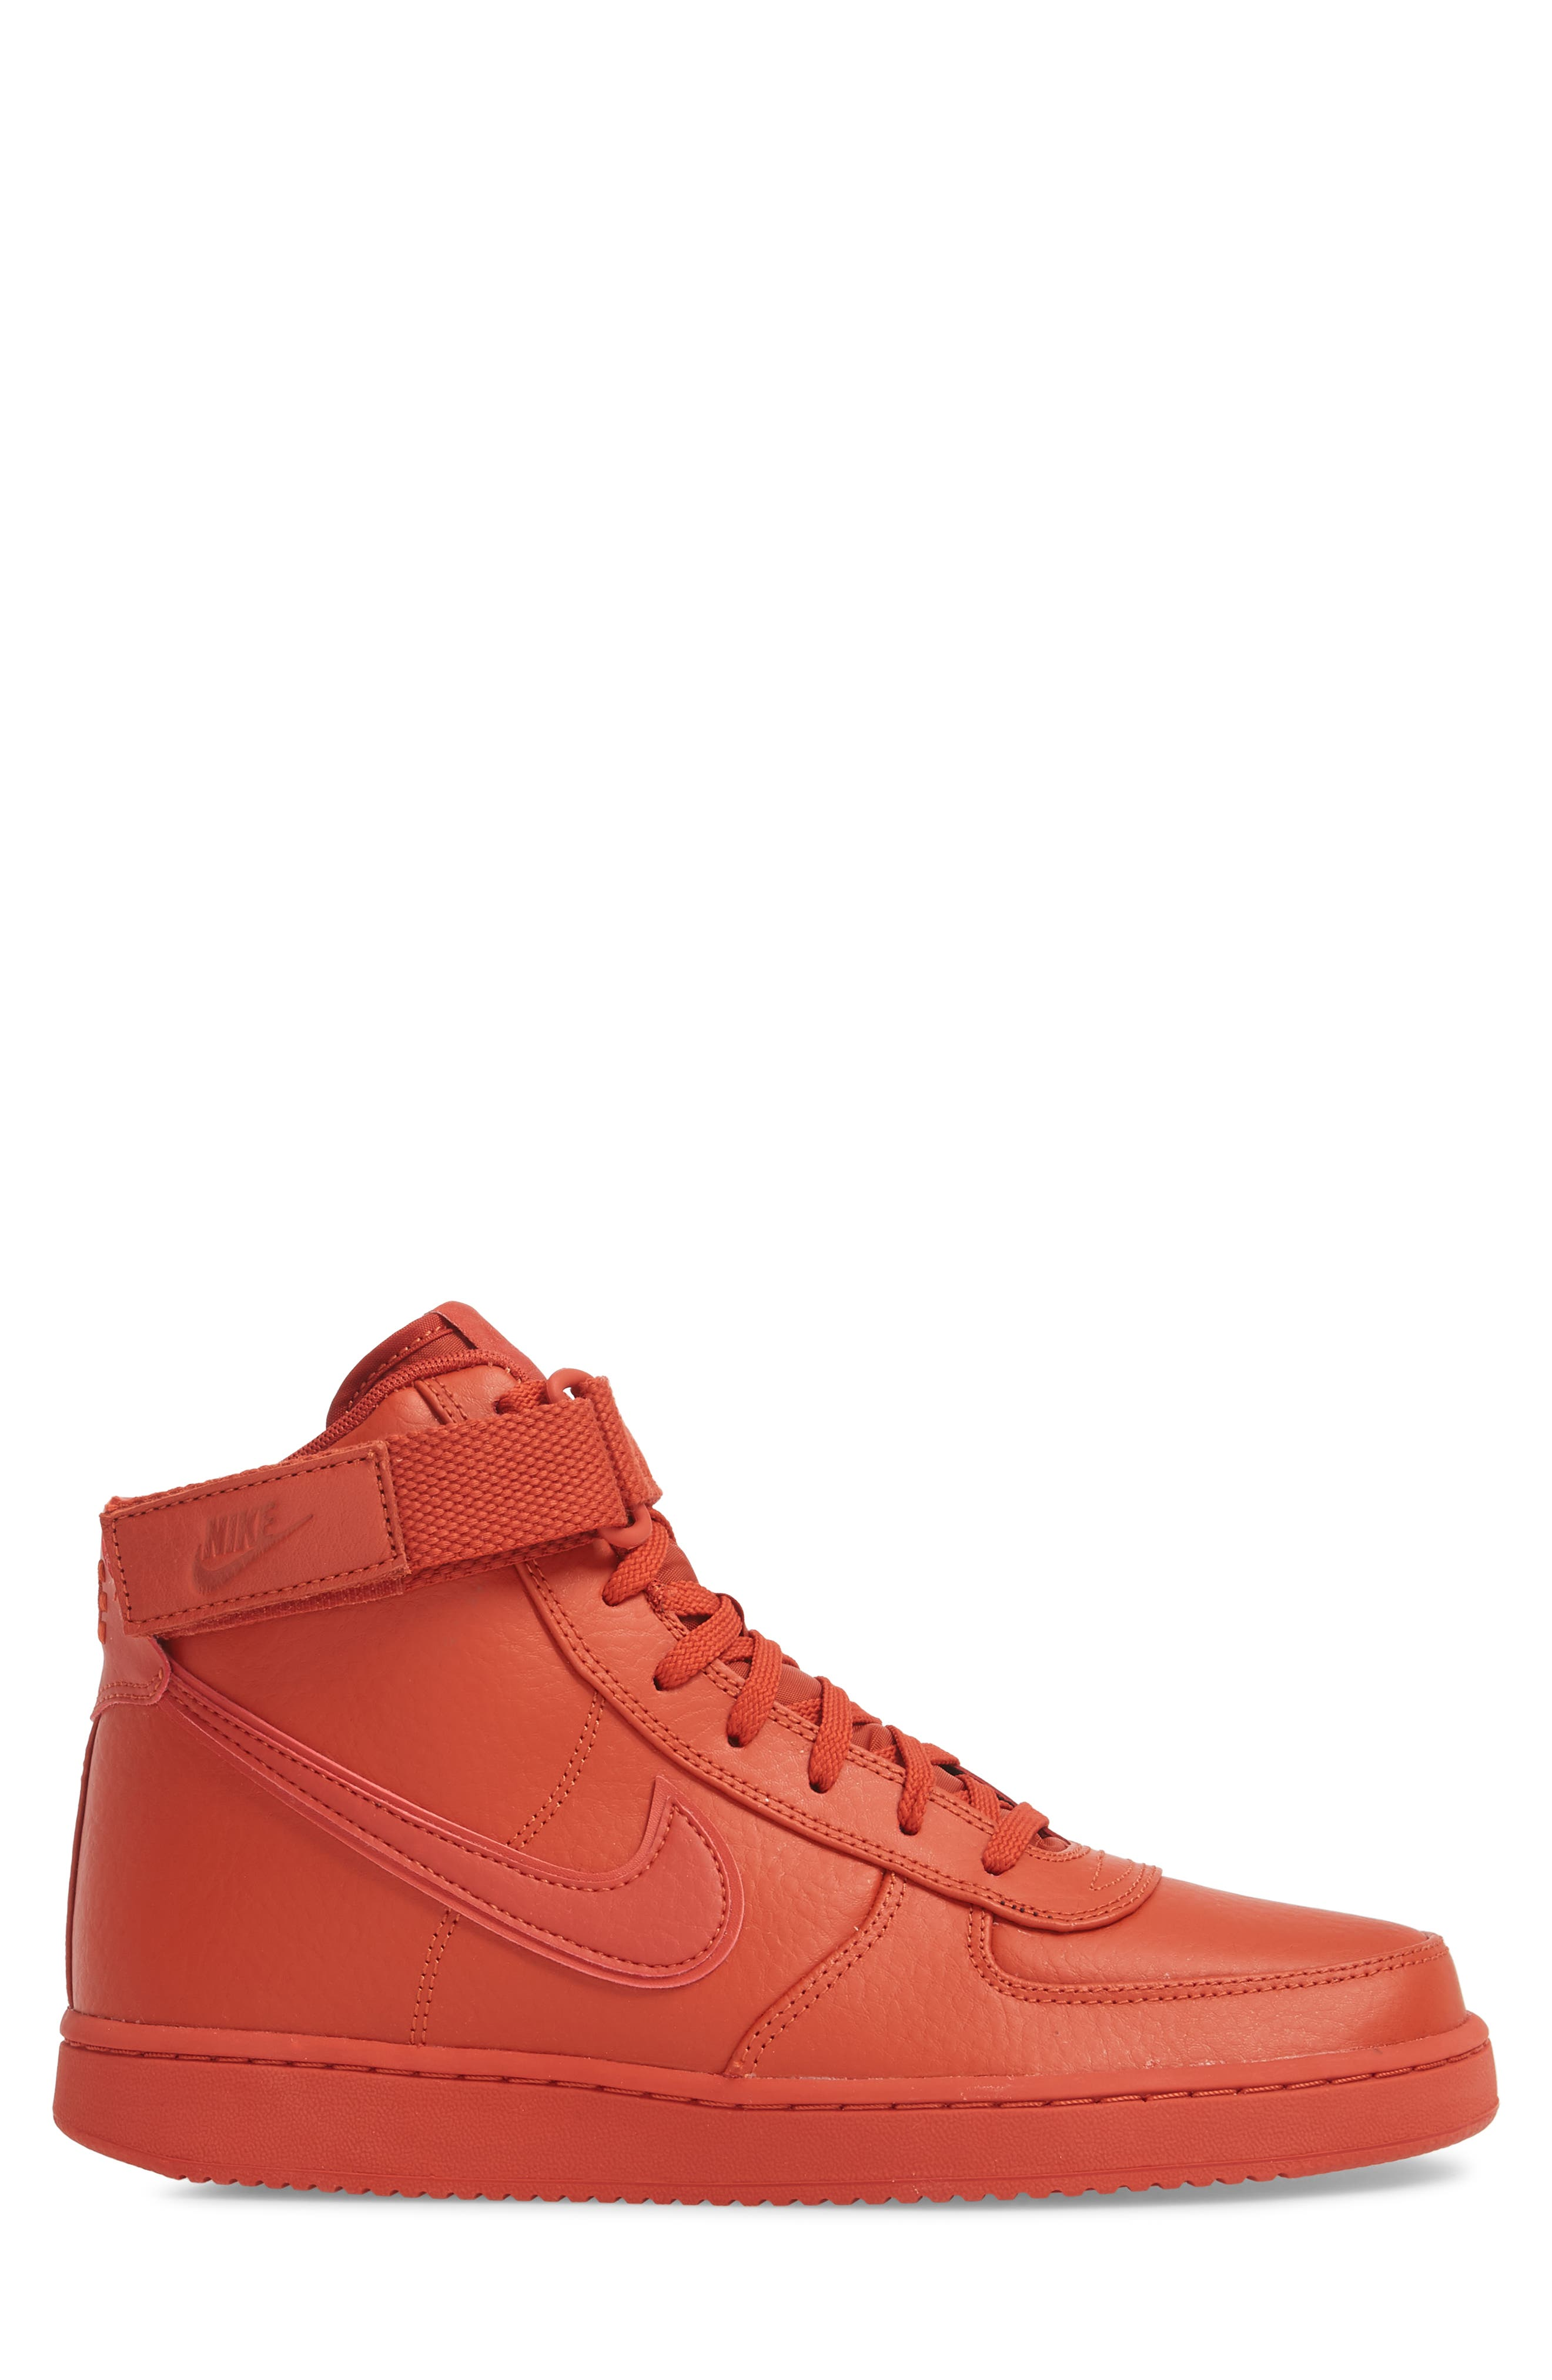 Vandal High Supreme Leather Sneaker,                             Alternate thumbnail 3, color,                             DRAGON RED